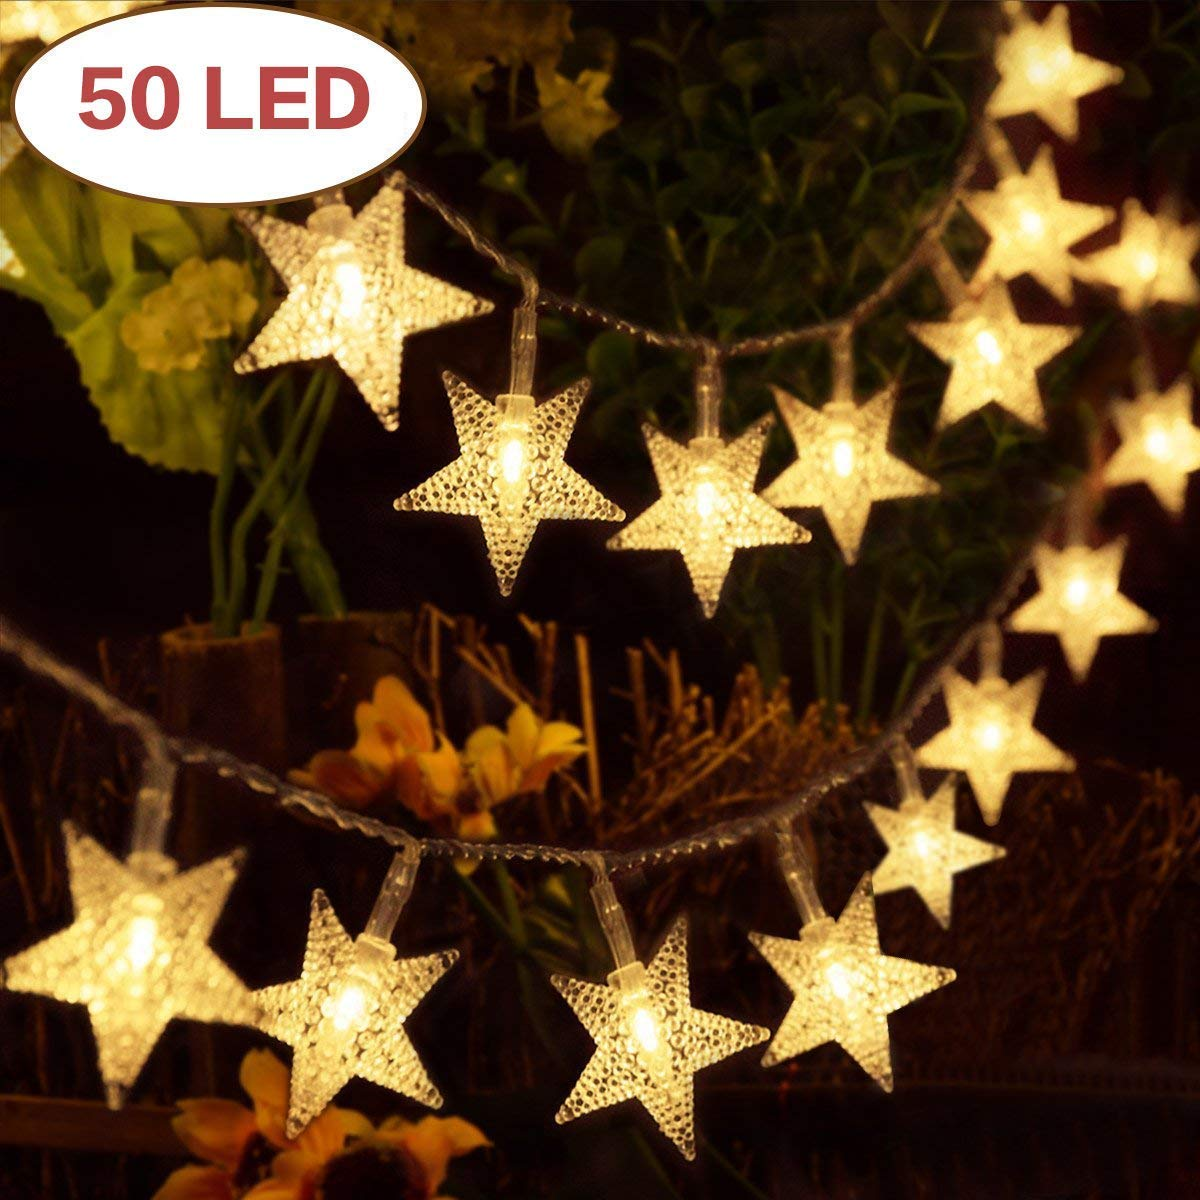 50 LED Globe Fairy Lights, 16 Feet Battery Operated Globe String Lights Starry Lights for Home Party Birthday Garden Festival Wedding Indoor Outdoor Use (Battery Powered) (Battery Powered 50 led) Fansheng